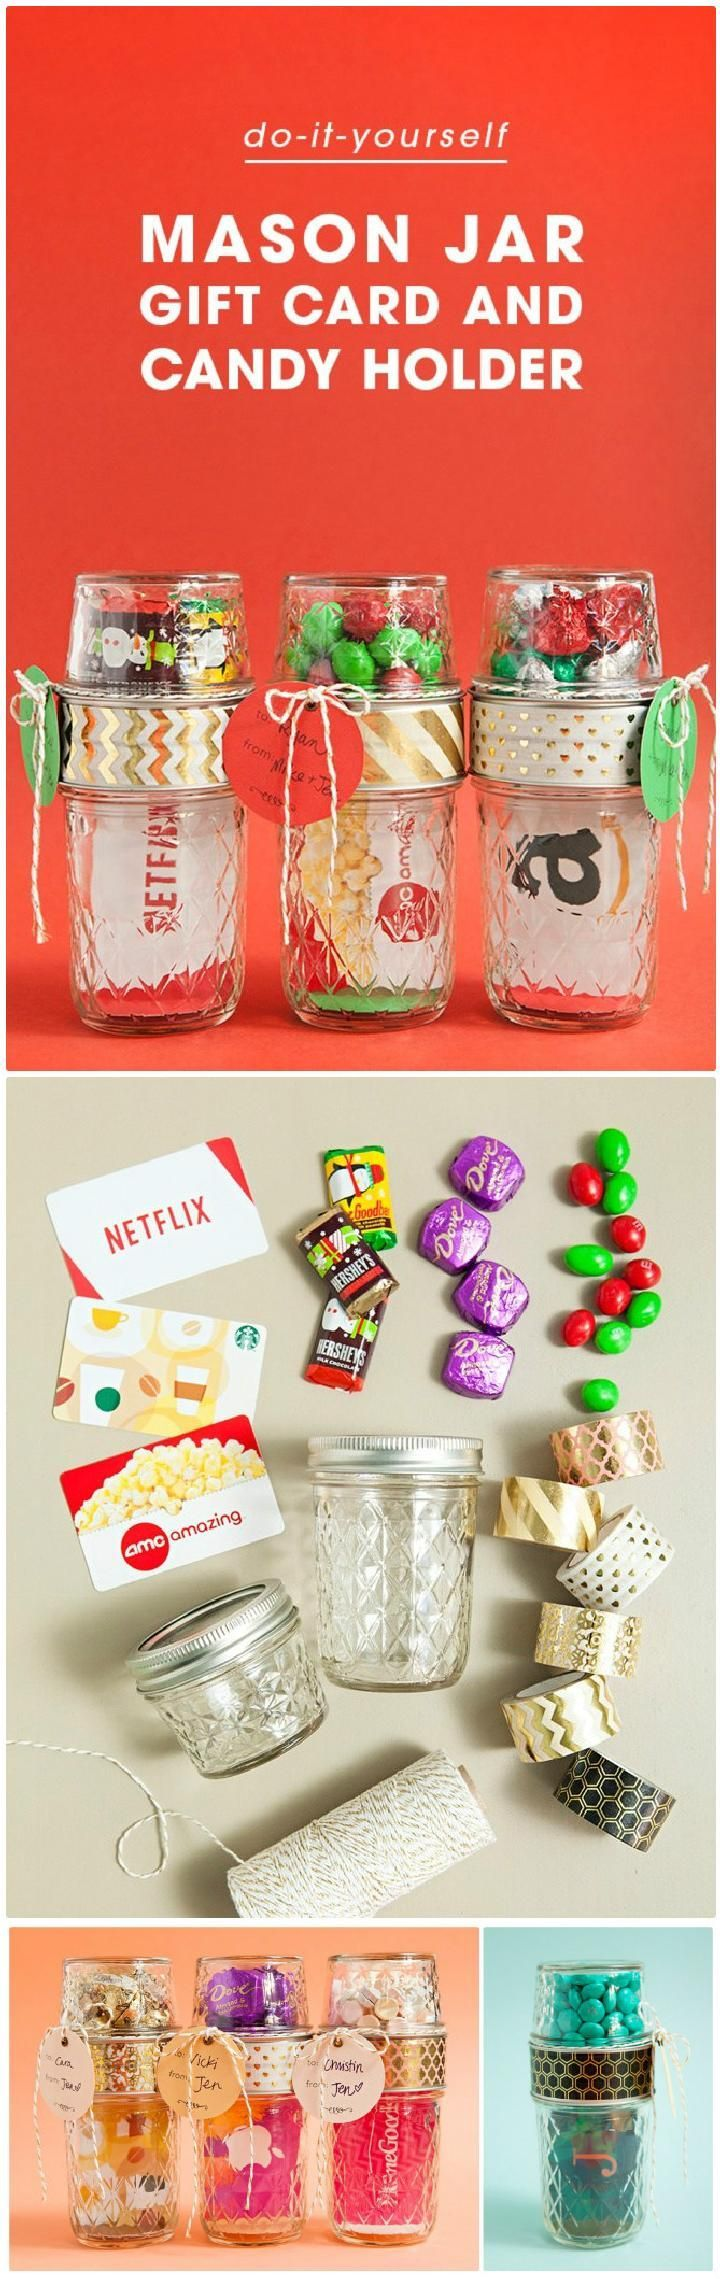 160 DIY Mason Jar Crafts and Gift Ideas - Page 3 of 17 - DIY & Crafts